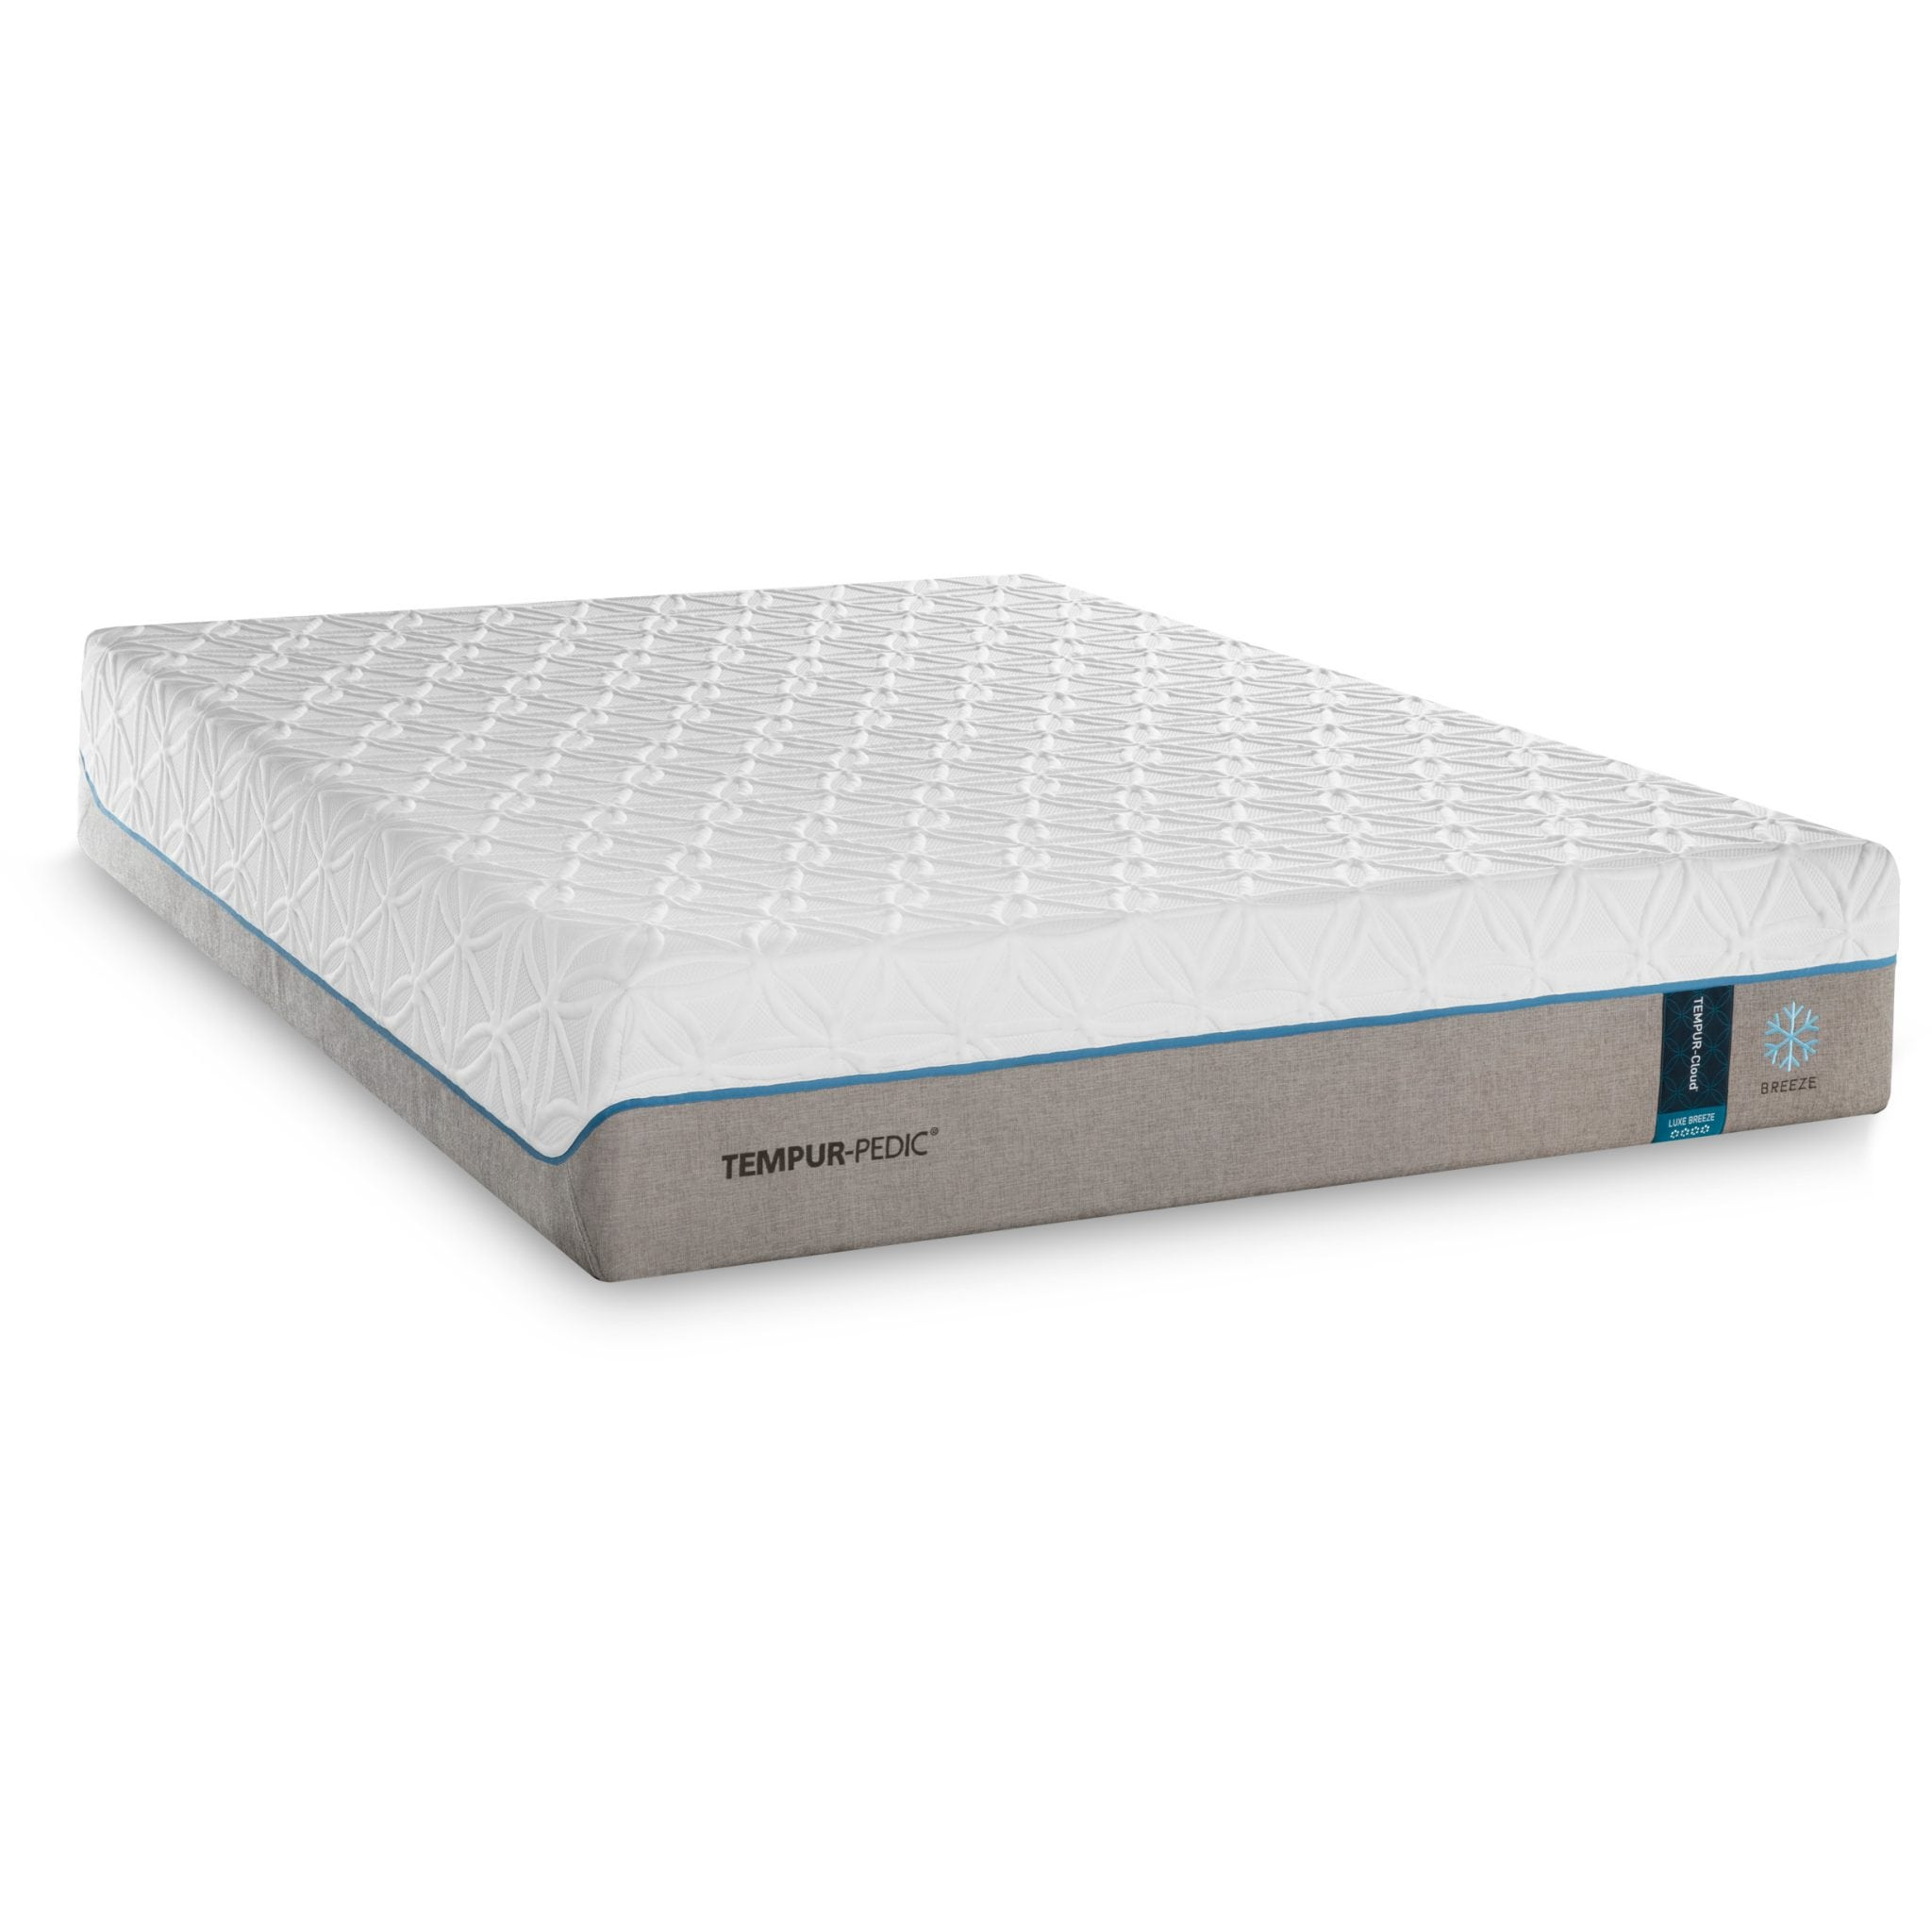 mattress supreme pedic tempur product flex hybrid metro corner mattresses